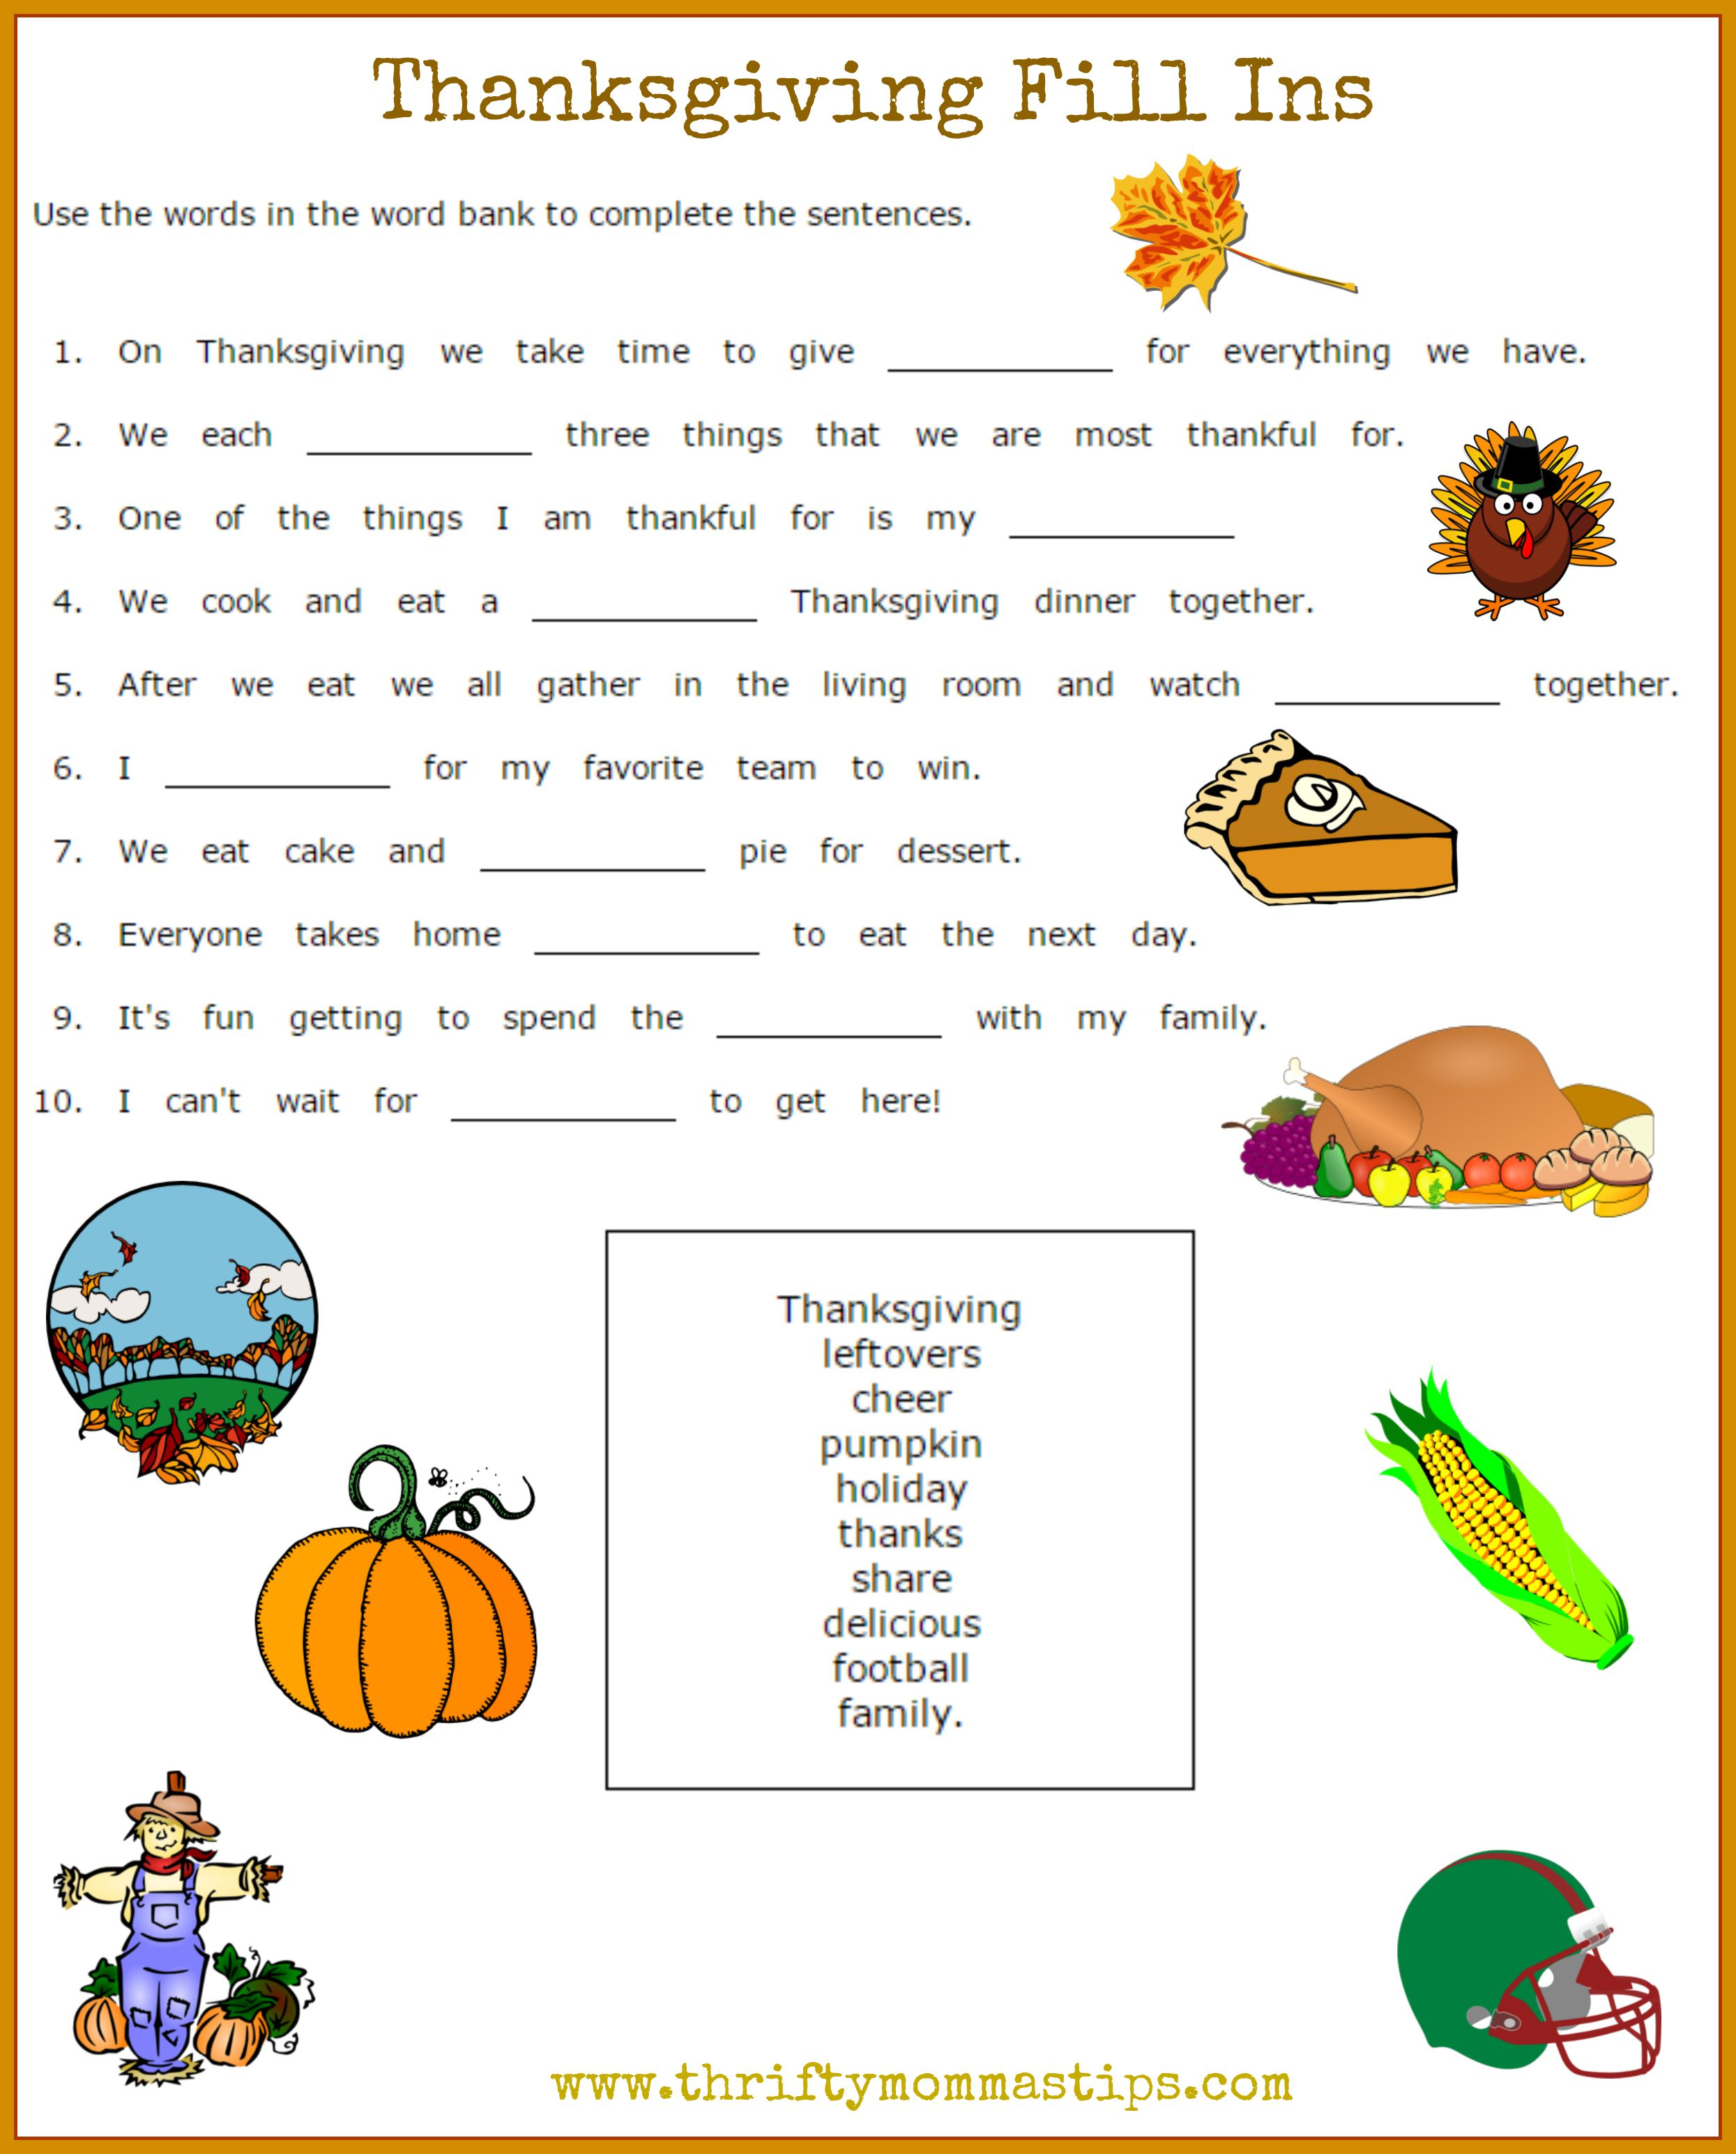 Thanksgiving Printables Fill In Vocabulary Sheet For Children